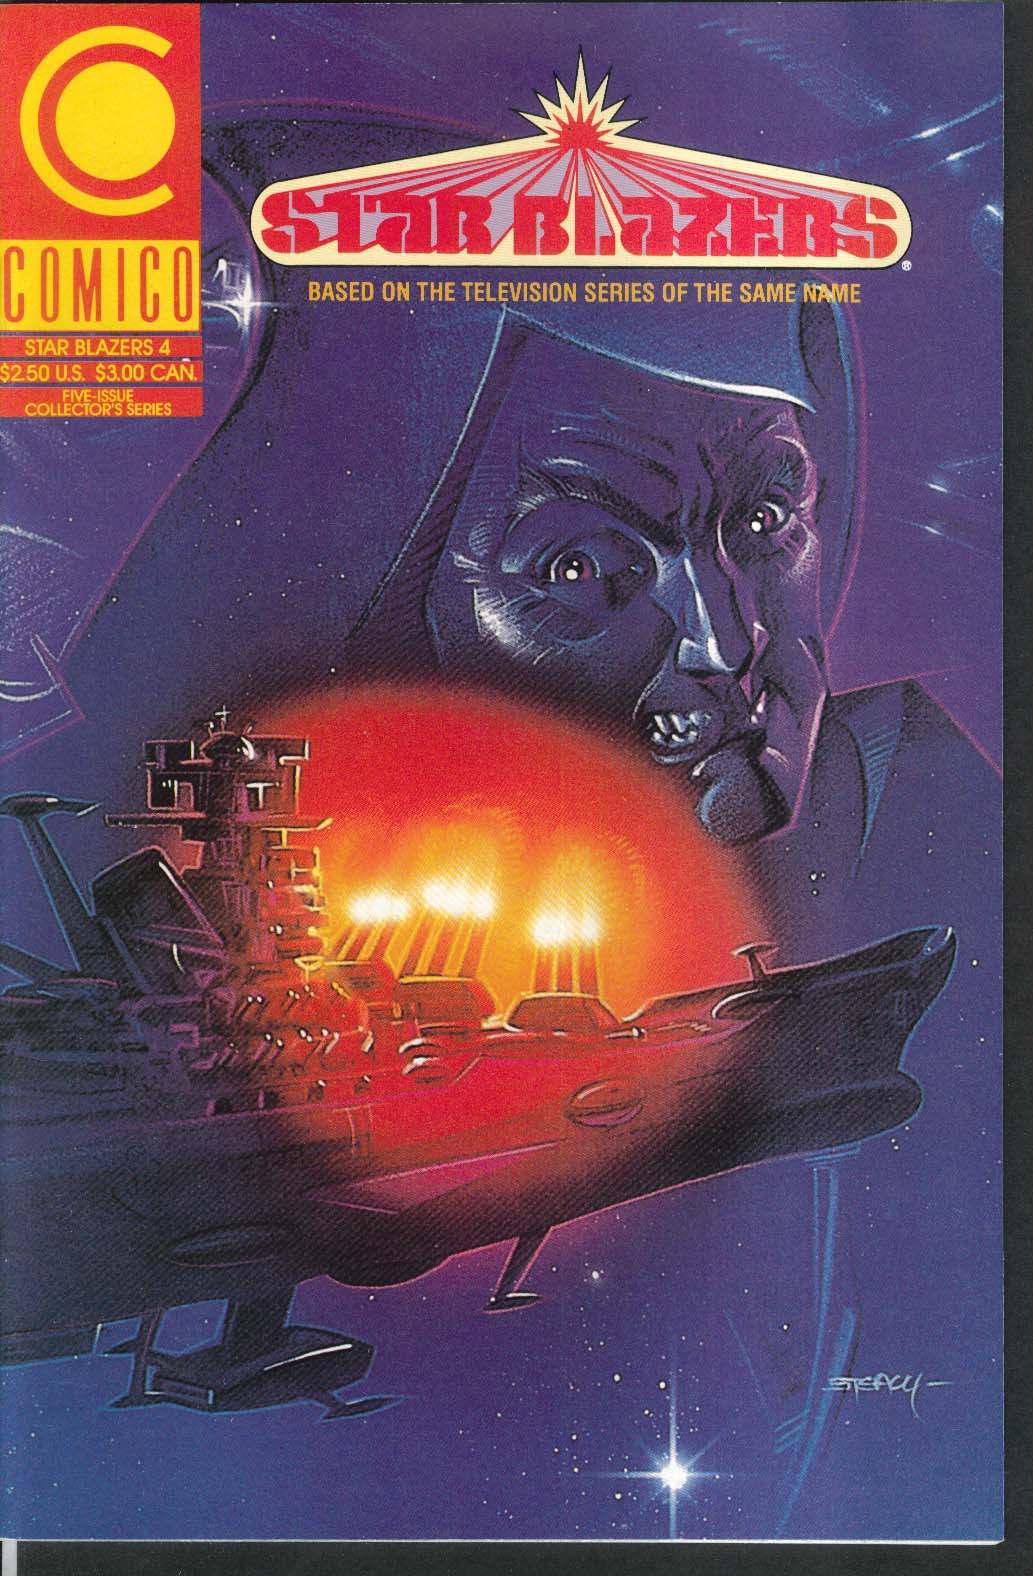 STAR BLAZERS #4 Comico comic book 8 1989